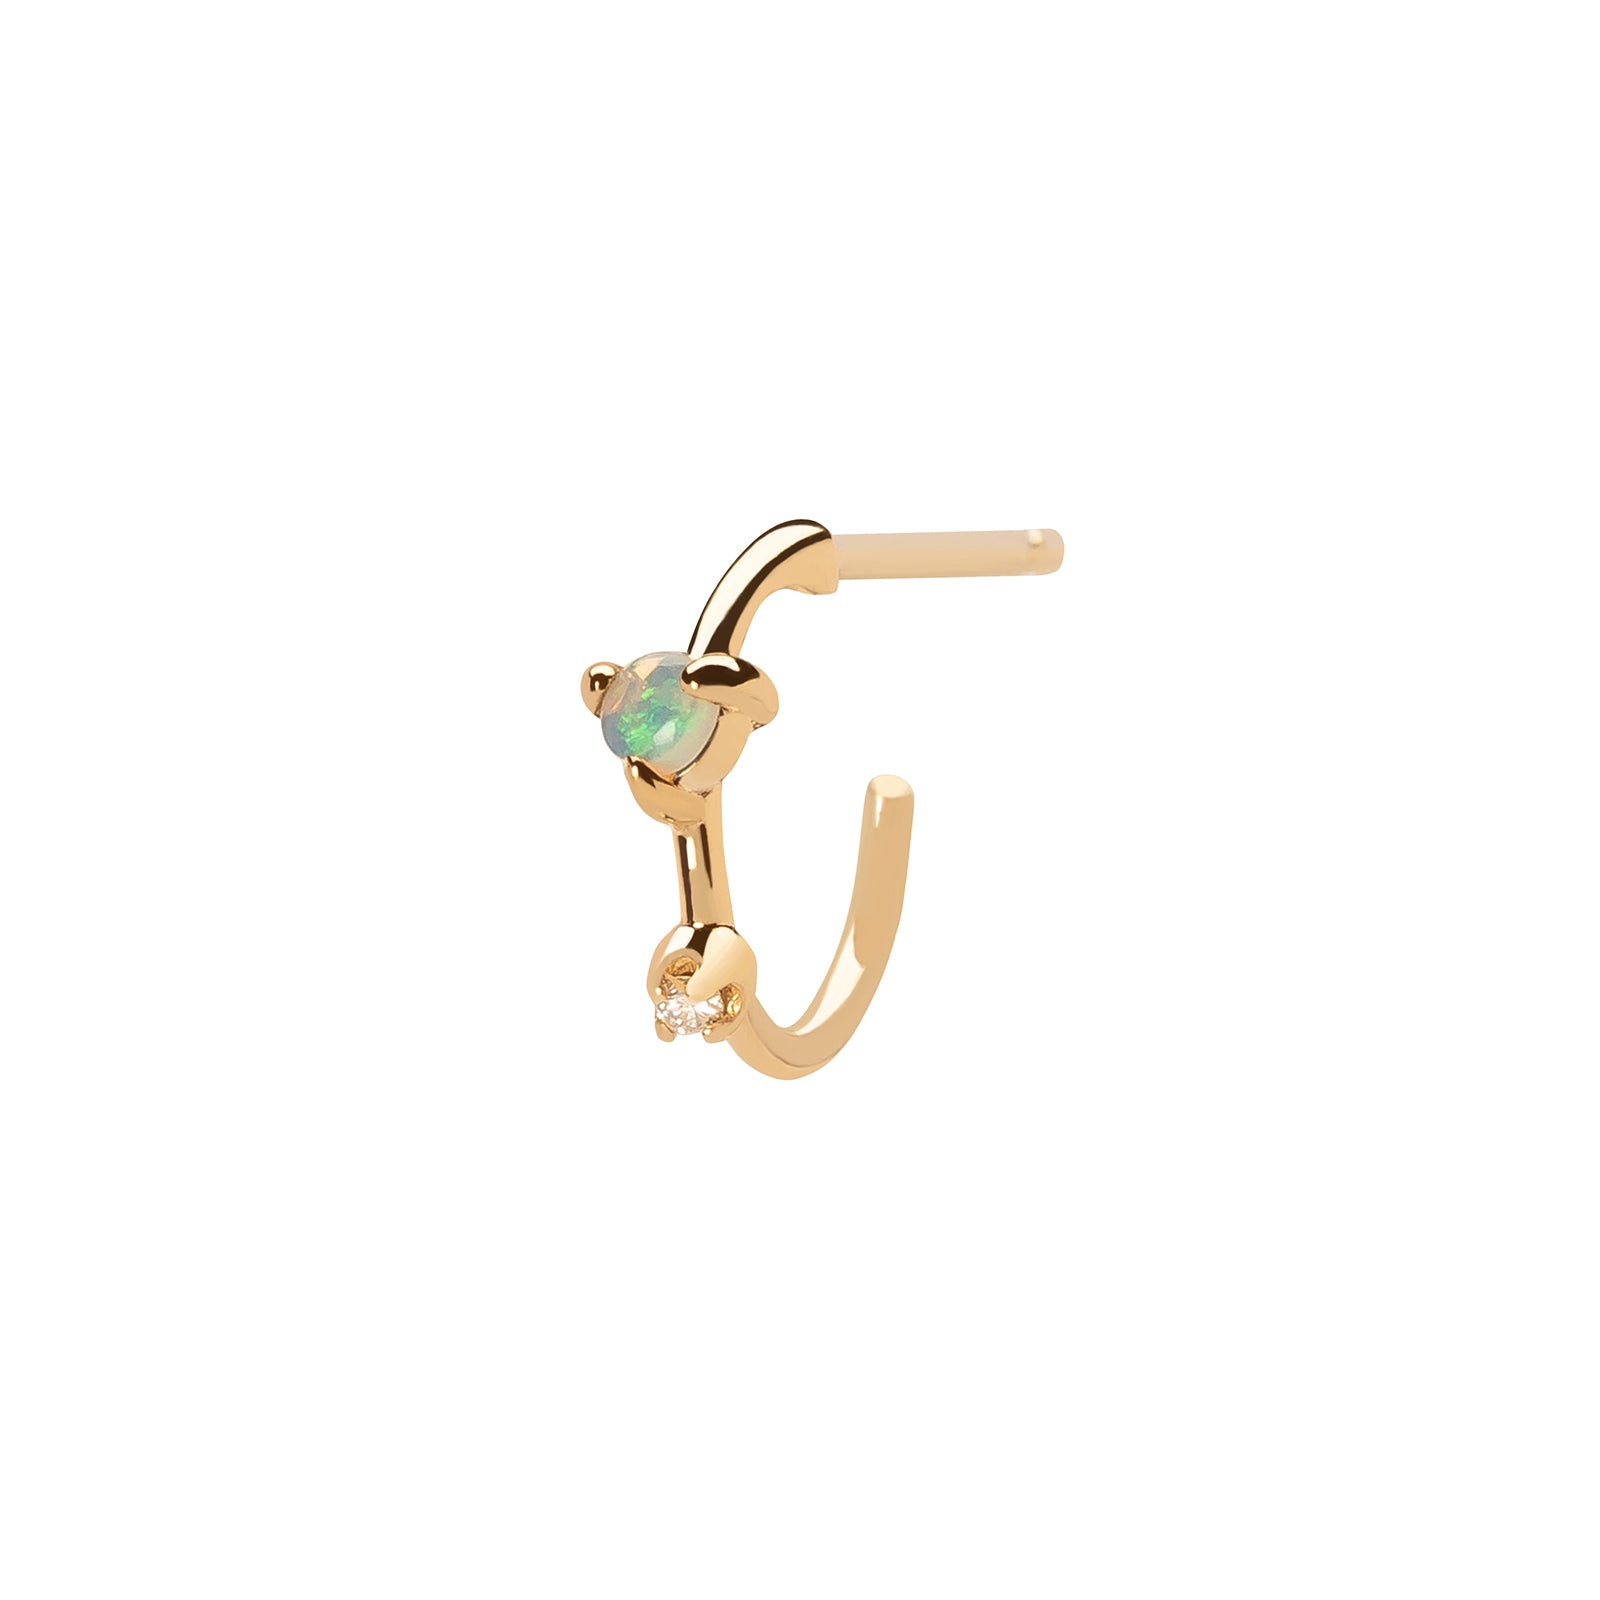 WWAKE Mini Two-Step Hoop Earring - Opal & Diamond - Earrings - Broken English Jewelry